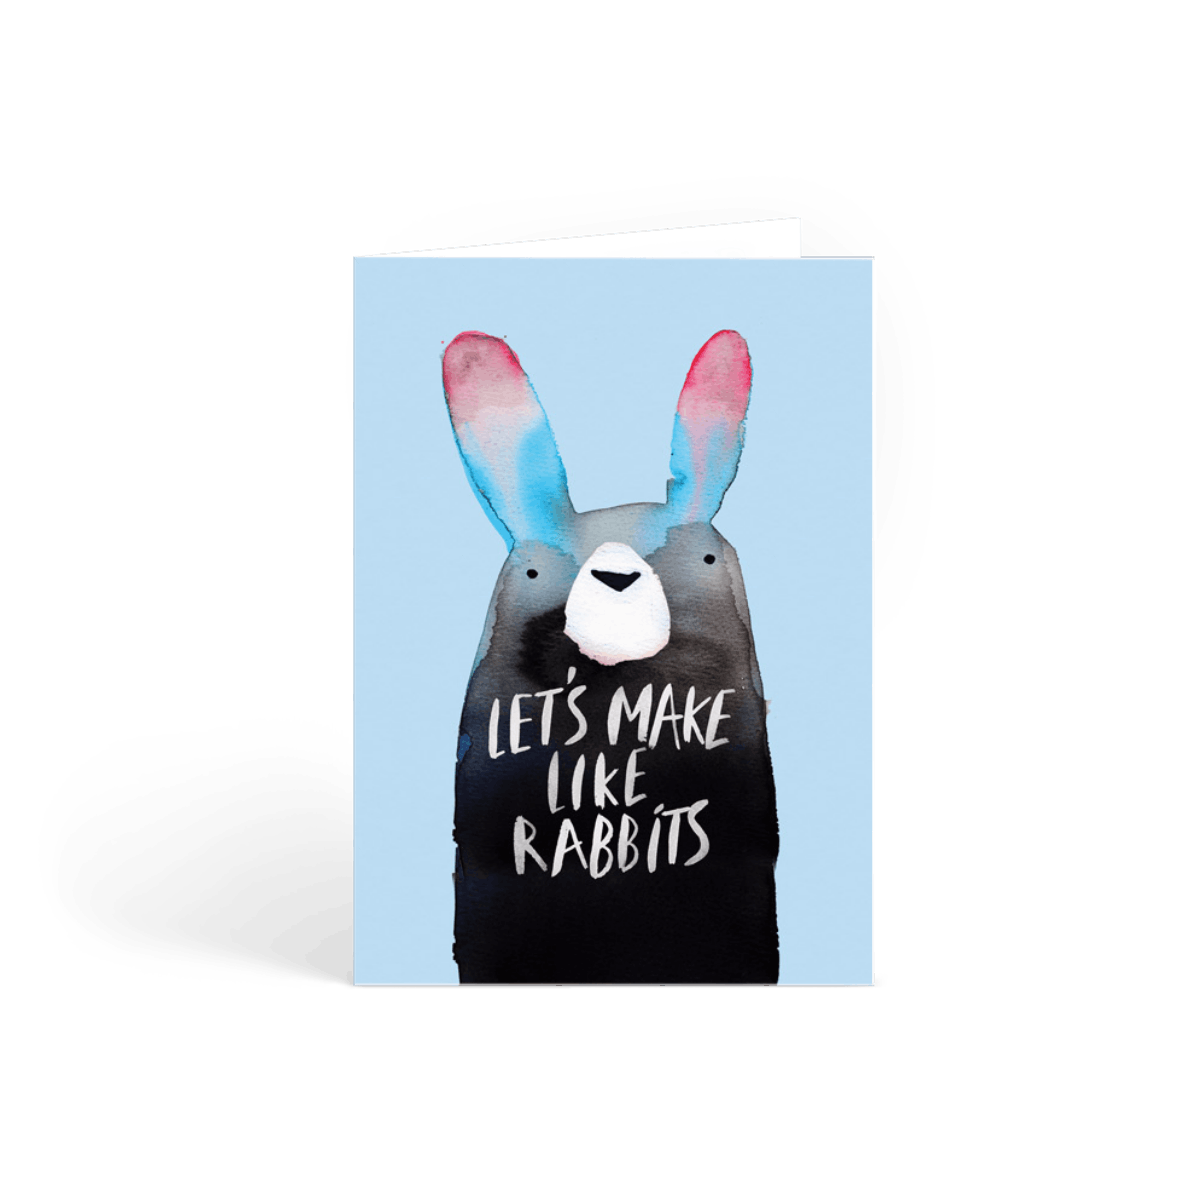 Https%3a%2f%2fwww.papier.com%2fproduct image%2f23883%2f2%2fmake like rabbits 5975 front 1498210703.png?ixlib=rb 1.1